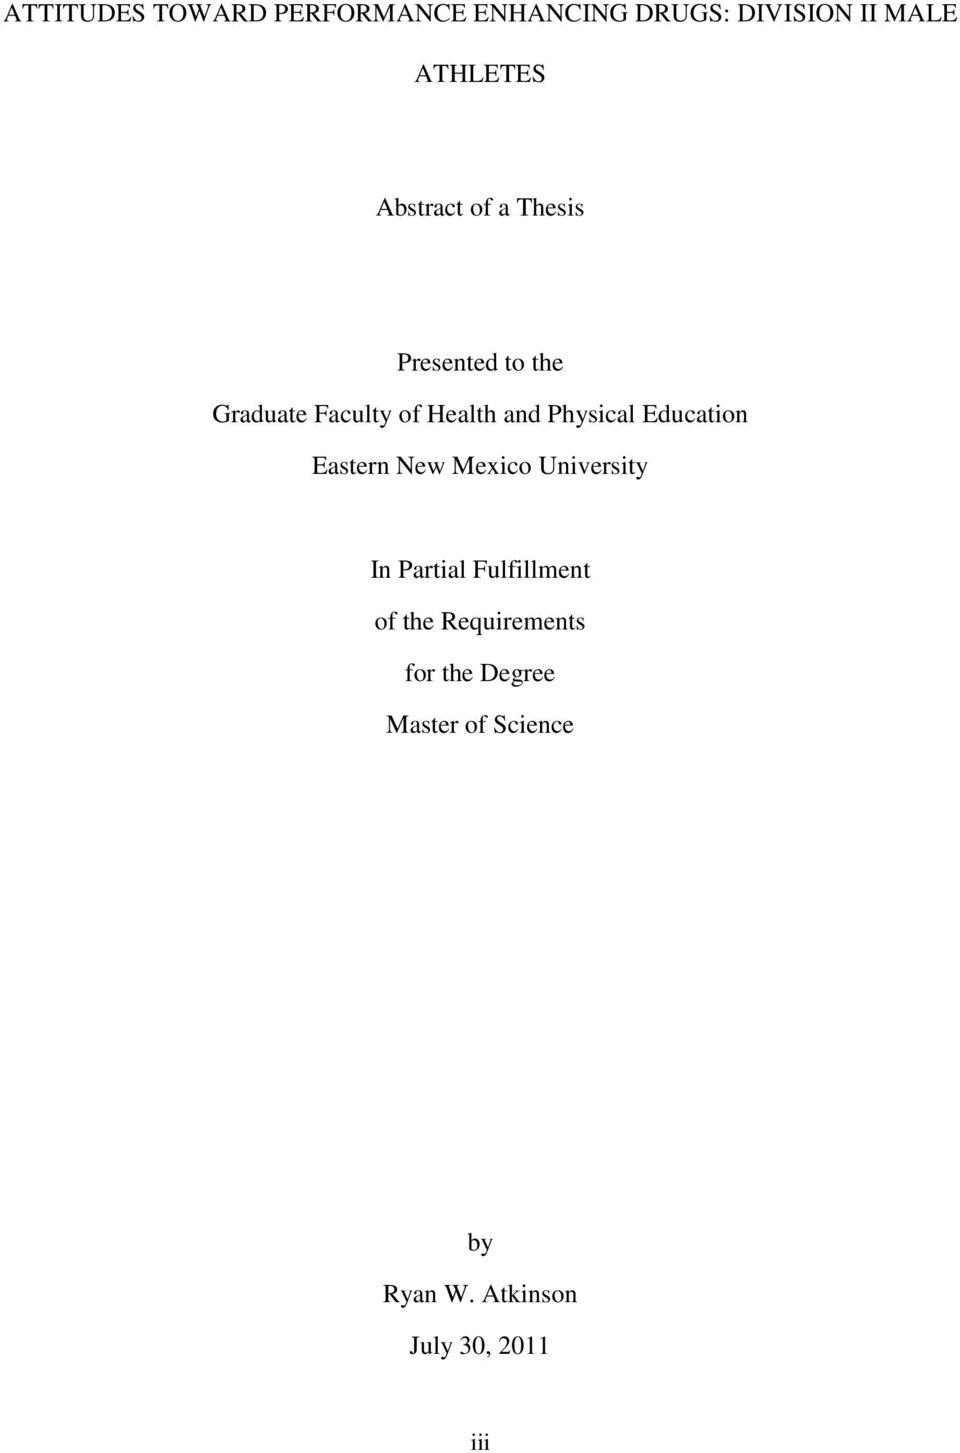 Sample thesis for physical education